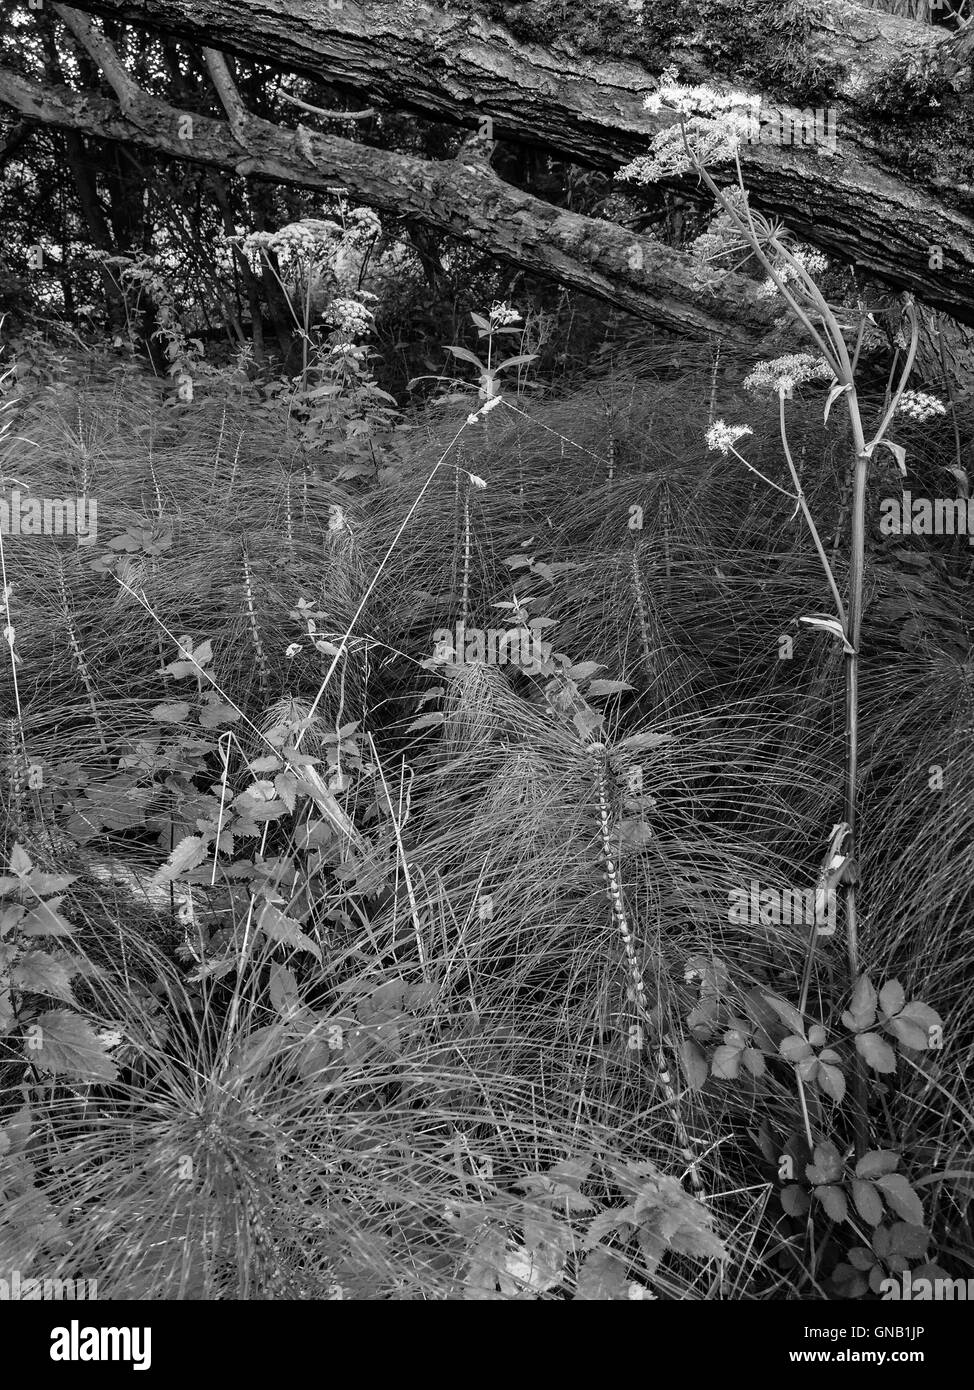 Textured plants within a forest. - Stock Image